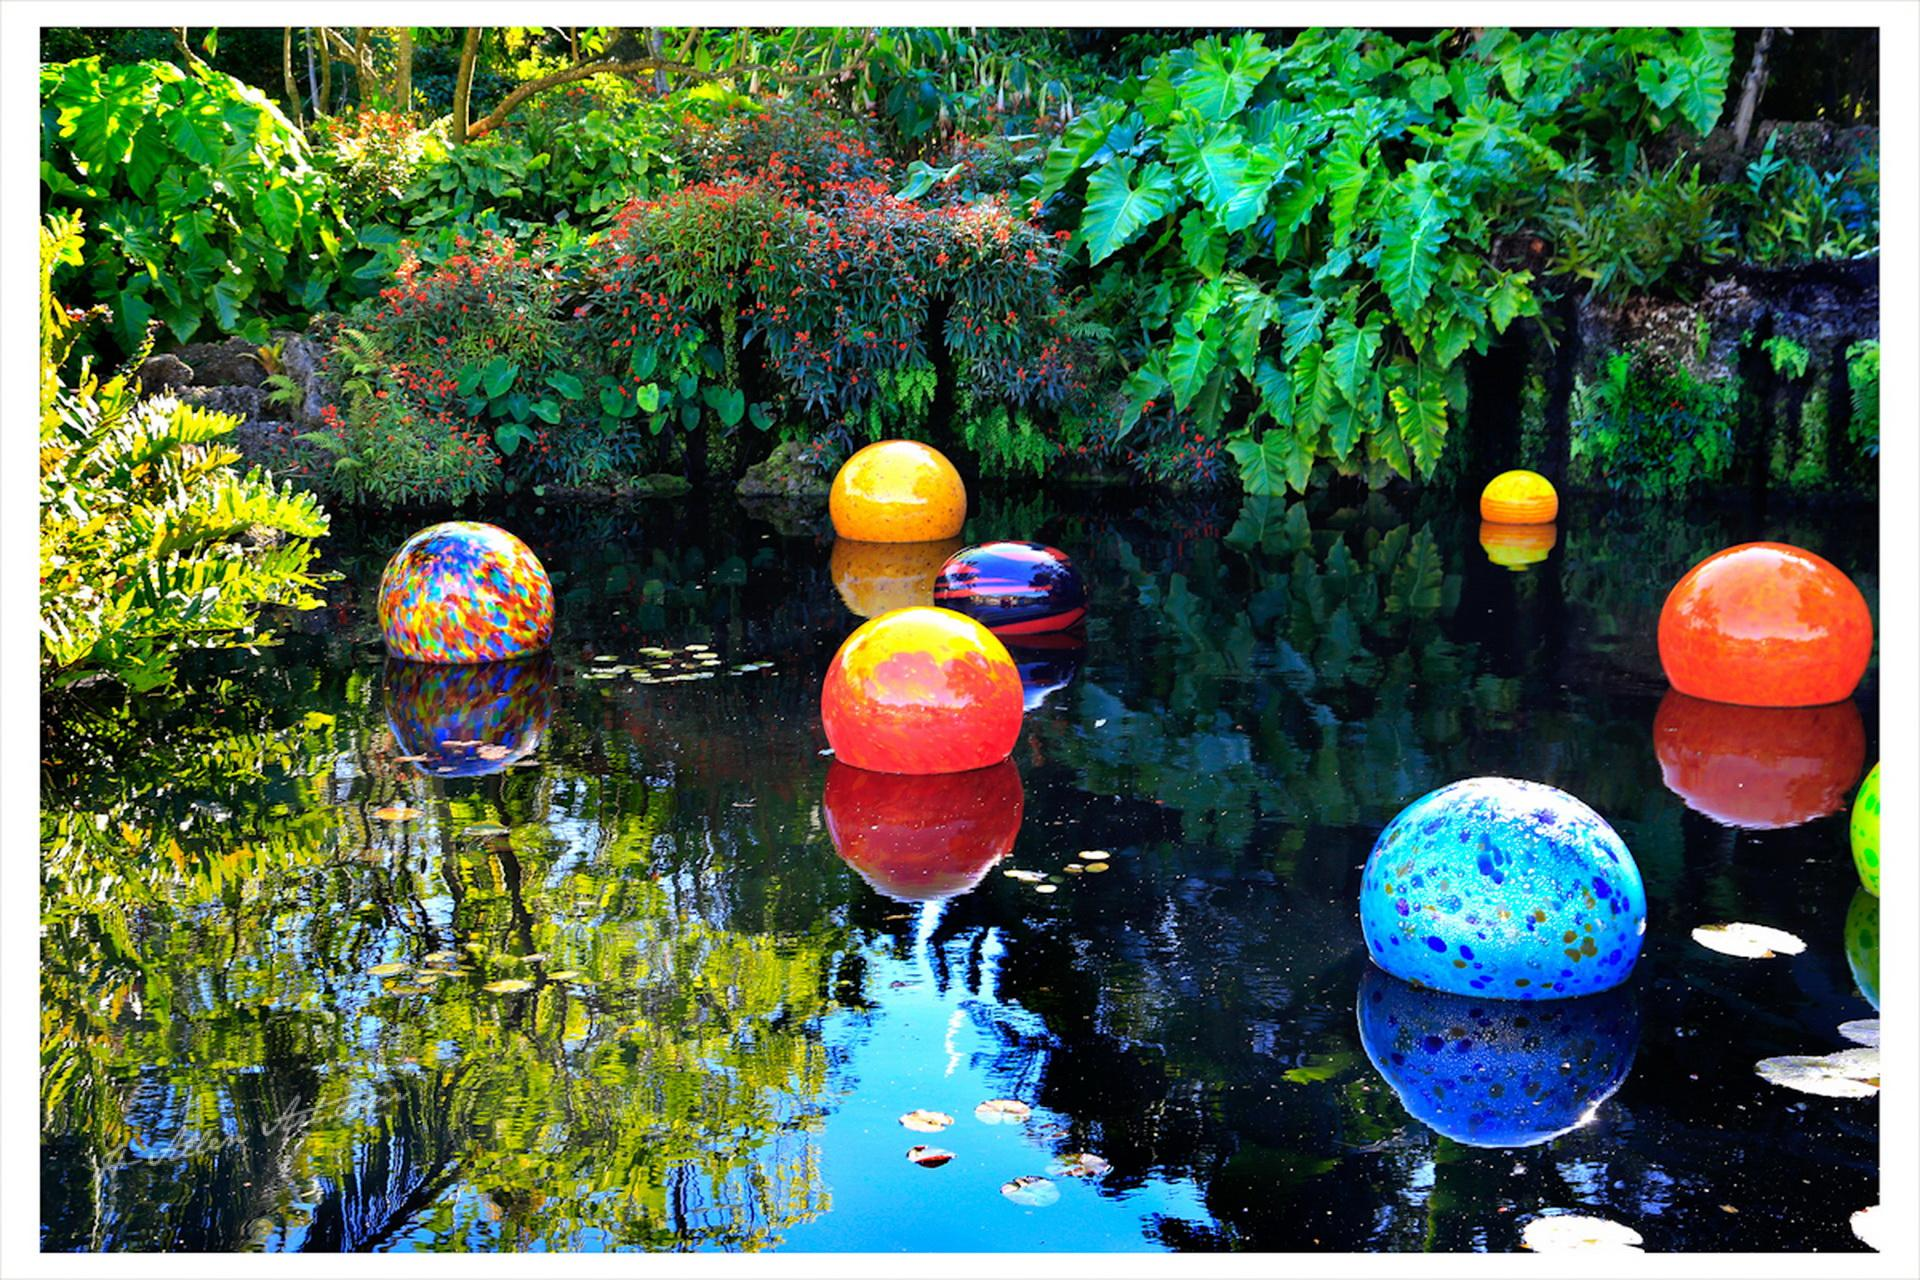 Chihuly Floats, Fairchild Gardens, FL